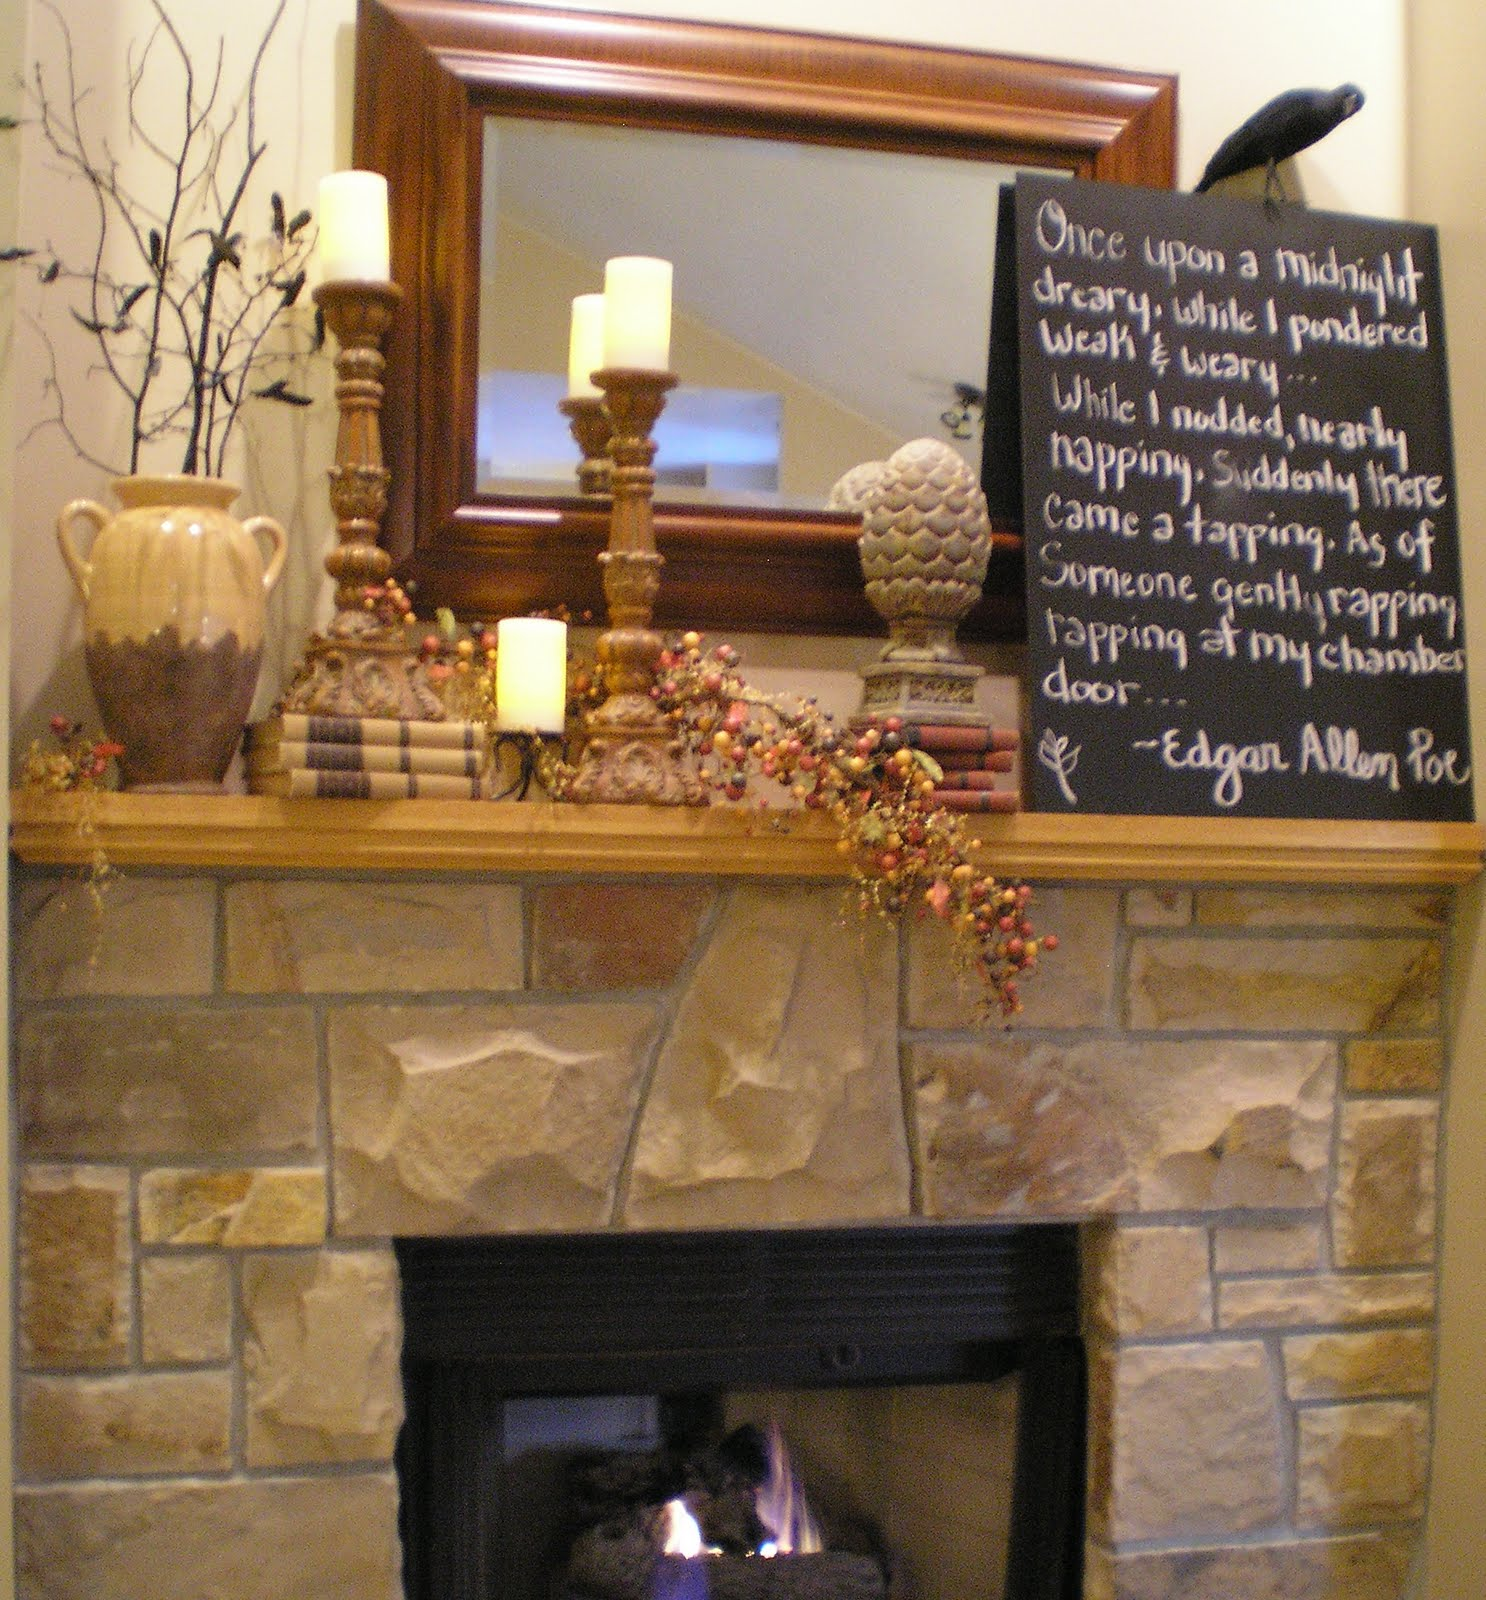 Wip blog autumn mantel decor ideas for Fire place mantel ideas